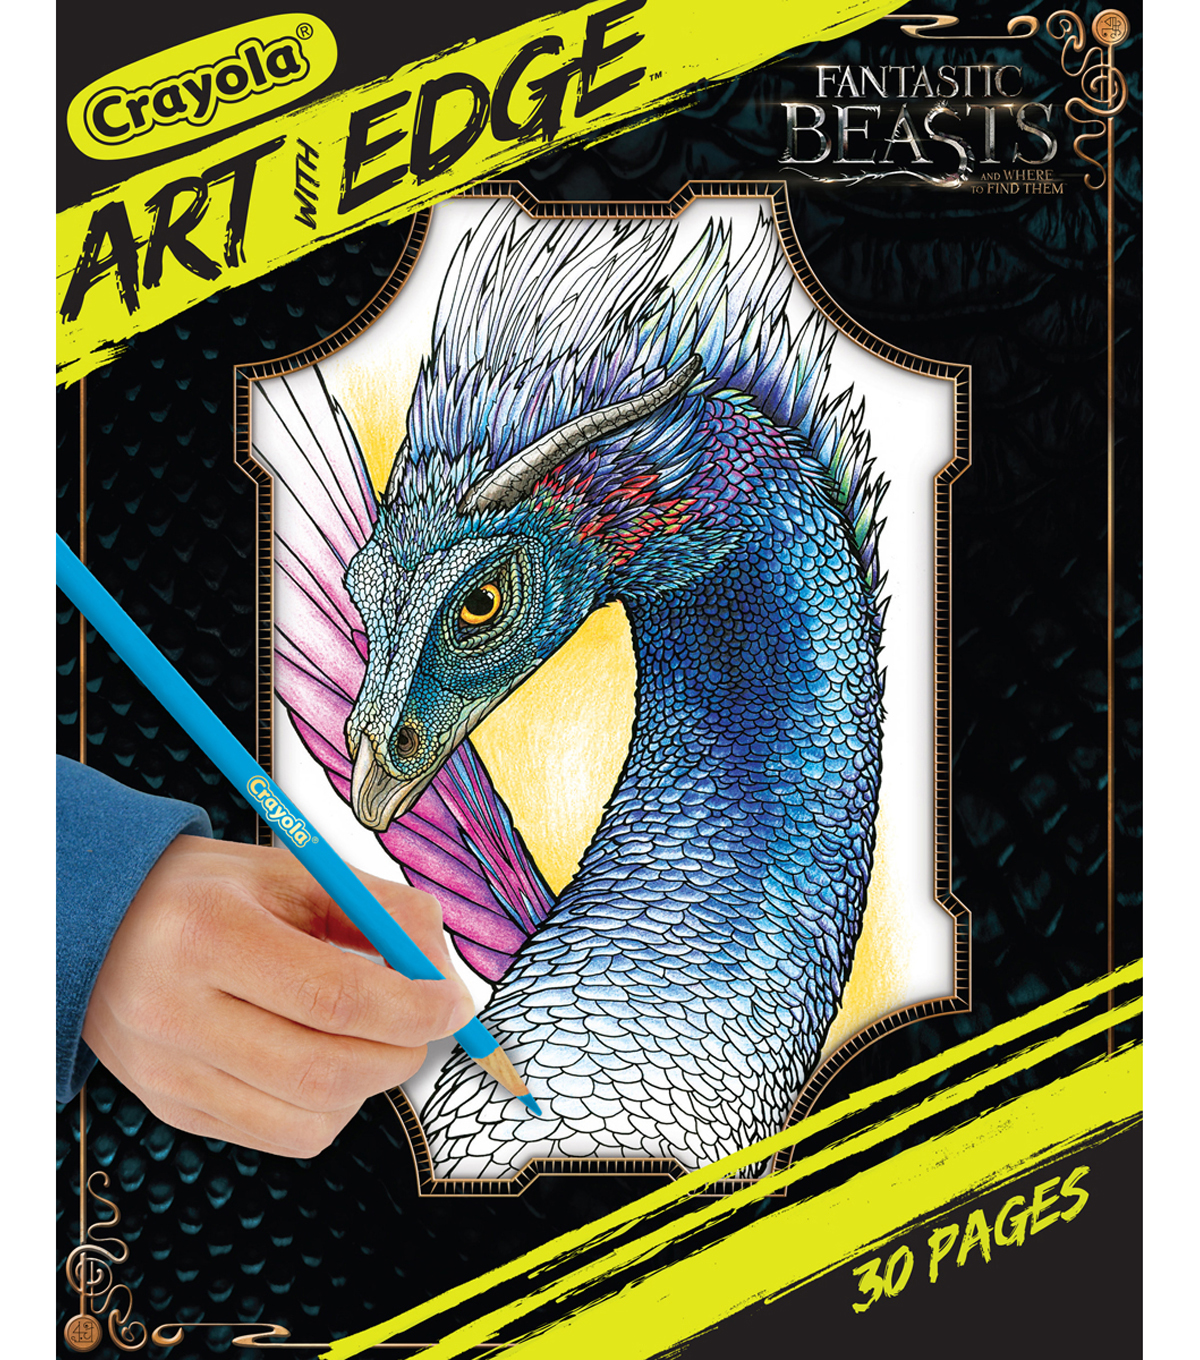 Crayola Art With Edge Coloring Pages-Fantastic Beasts